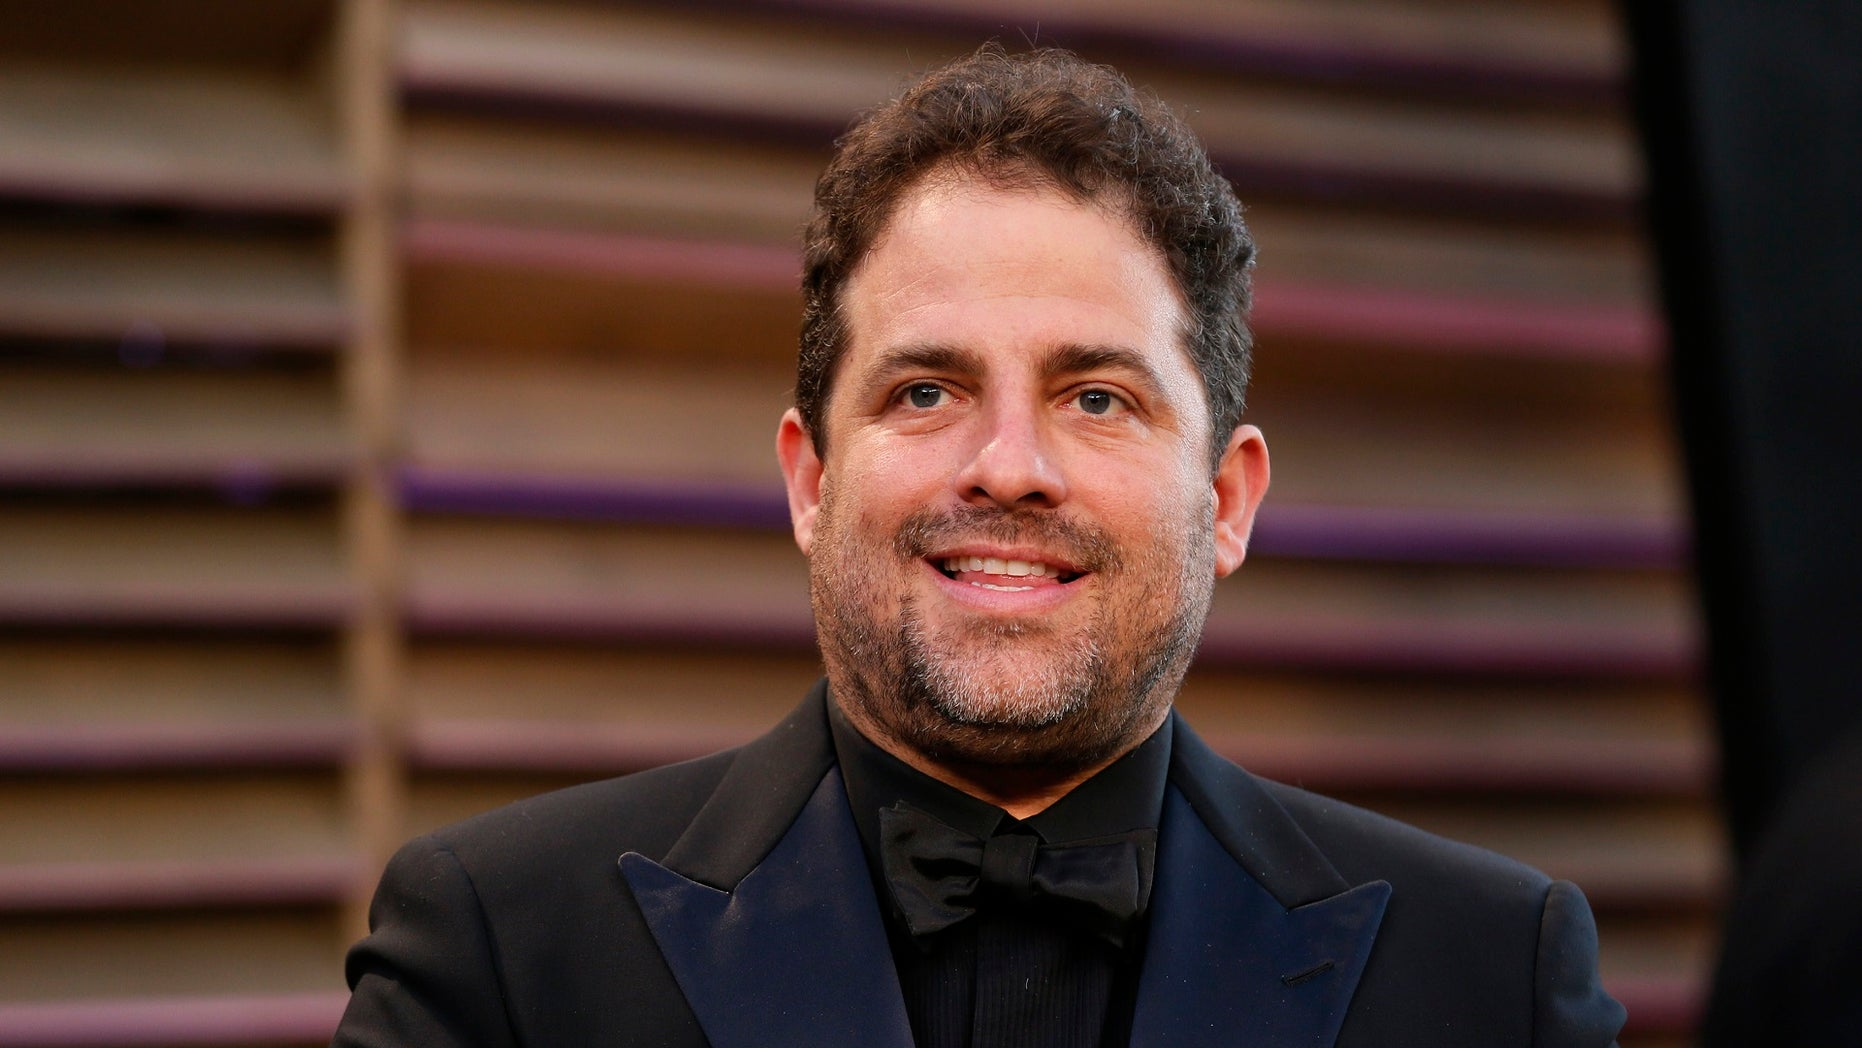 Hollywood director Brett Ratner is reportedly suing a woman for defamation after she accused him of sexual assault.